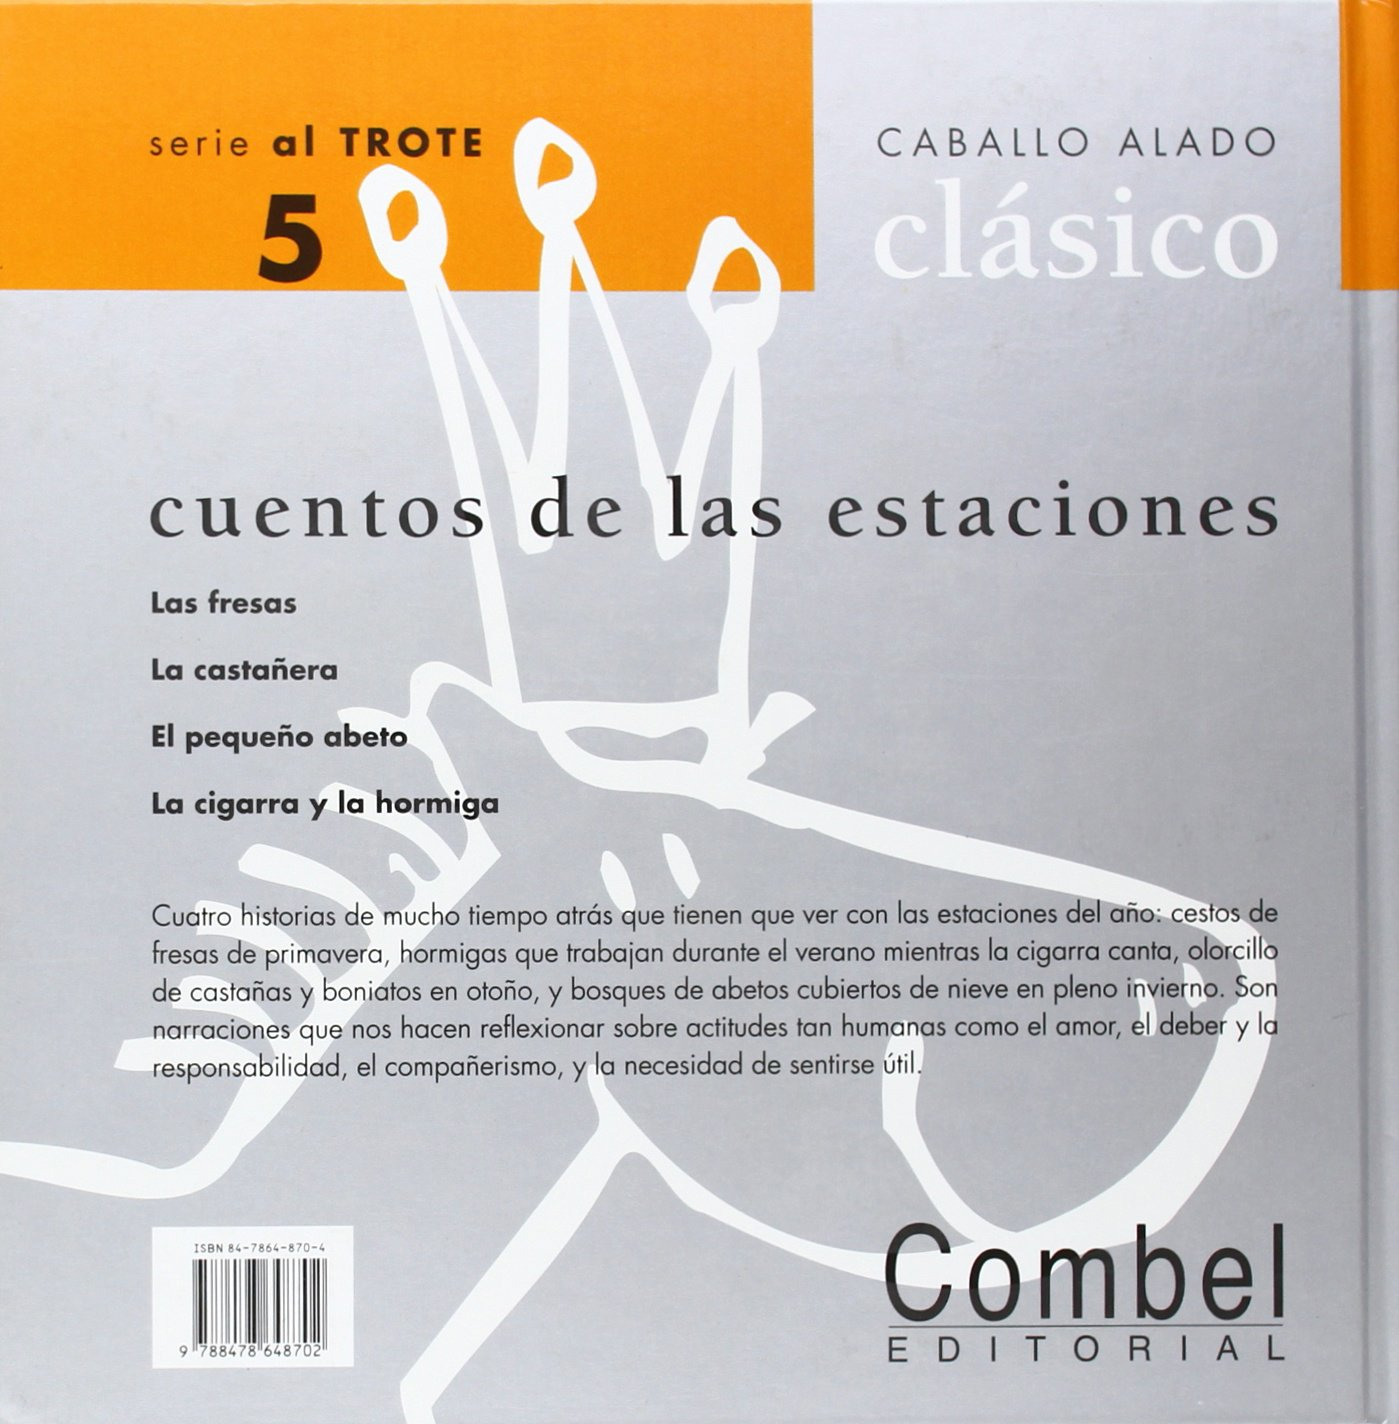 Las fresas (Caballo alado clásicos-Al trote) (Spanish Edition): Combel Editorial, Irene Bordoy: 9788478648702: Amazon.com: Books